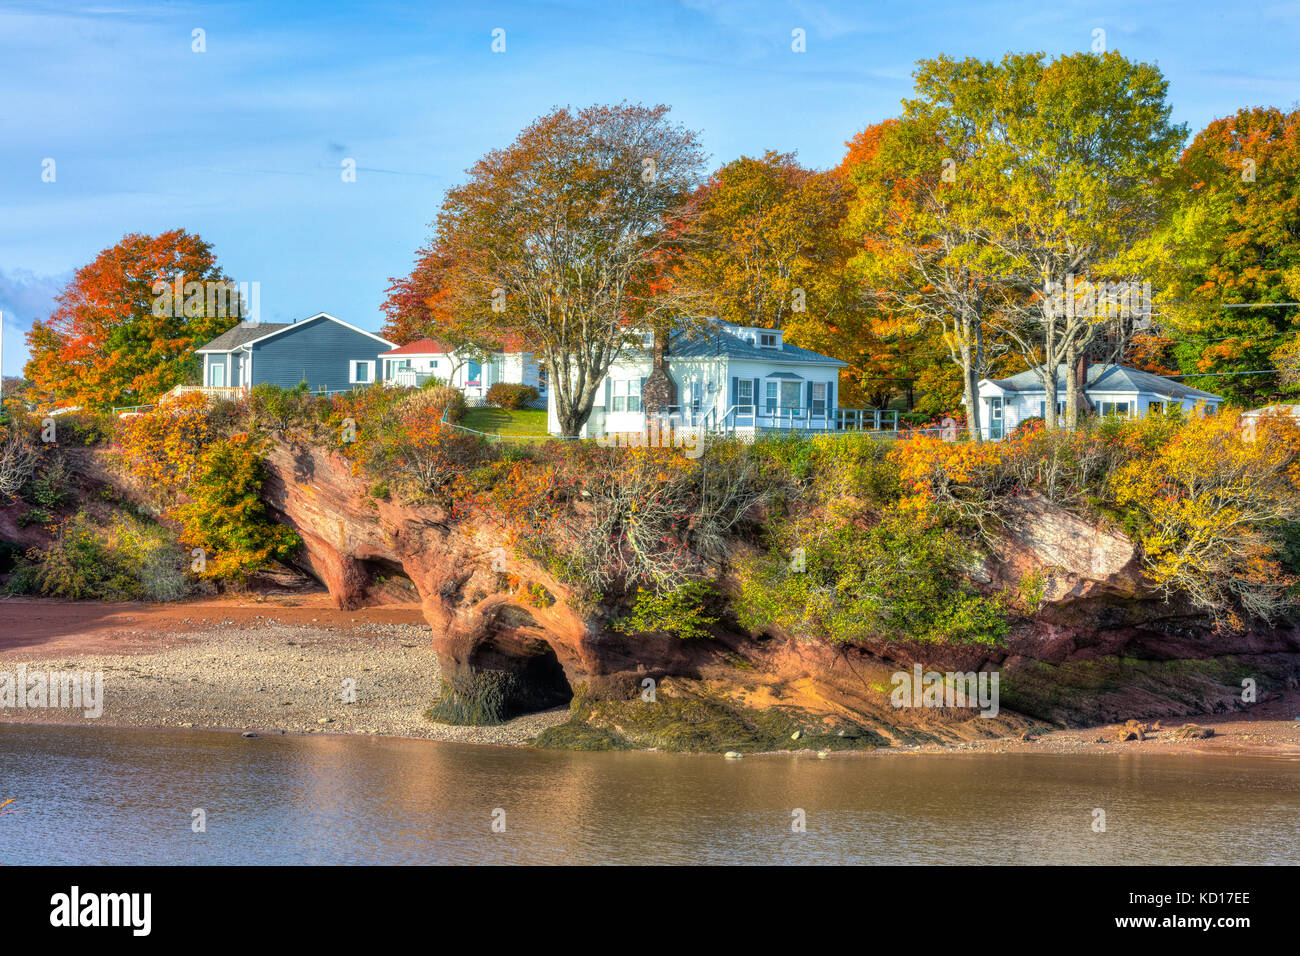 tide starting to rise, Bay of Fundy, St. Martins, New Brunswick, Canada - Stock Image